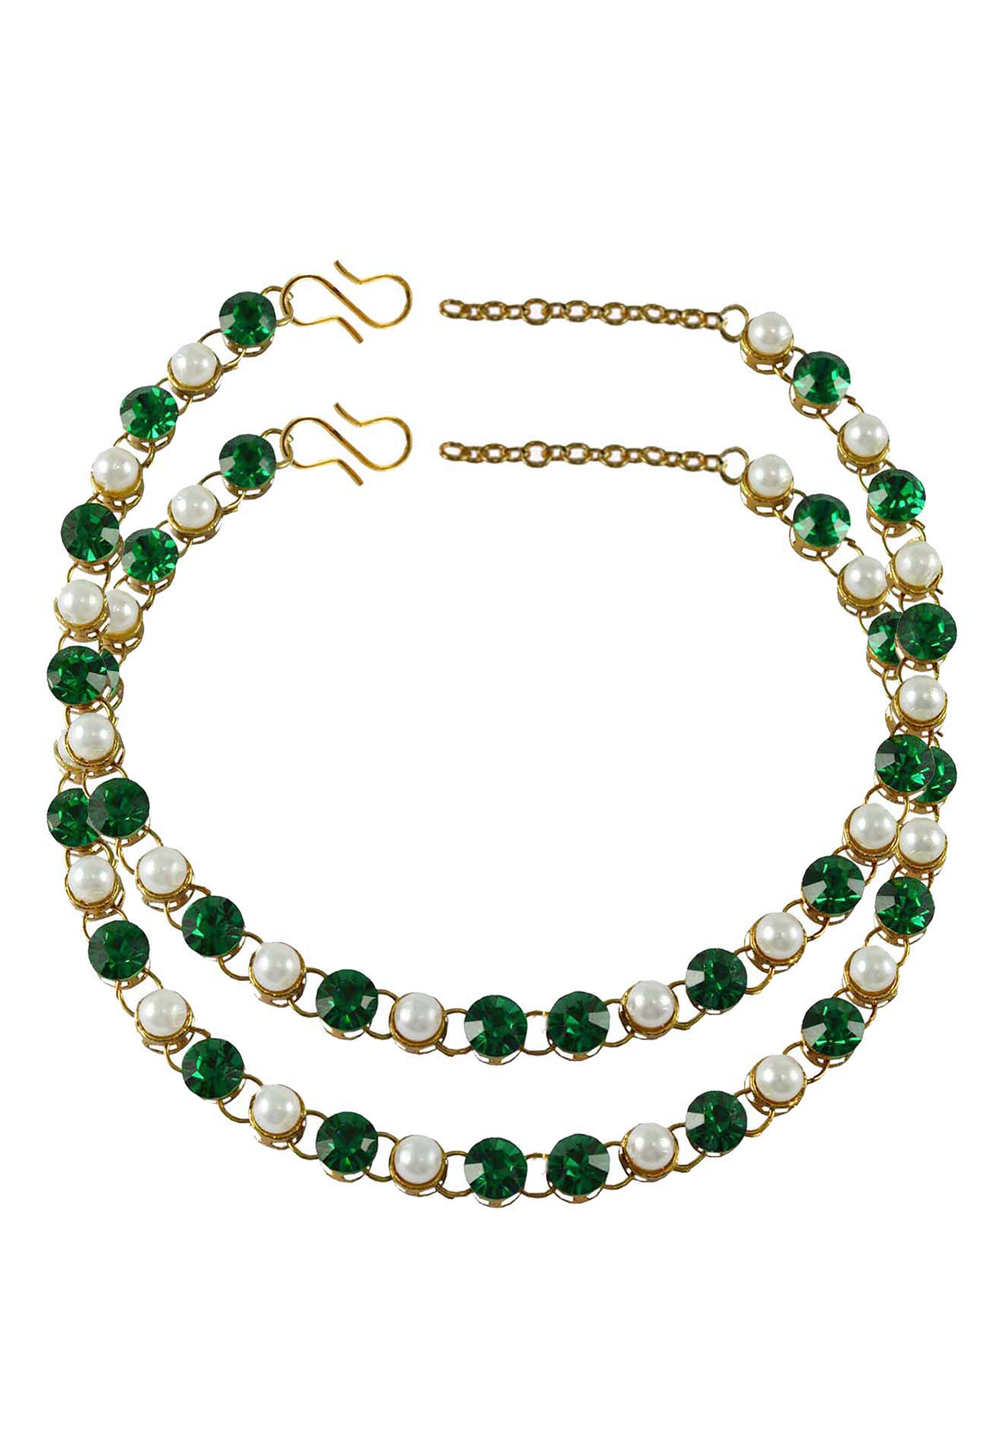 Green Brass Gold Plated Anklets 171276